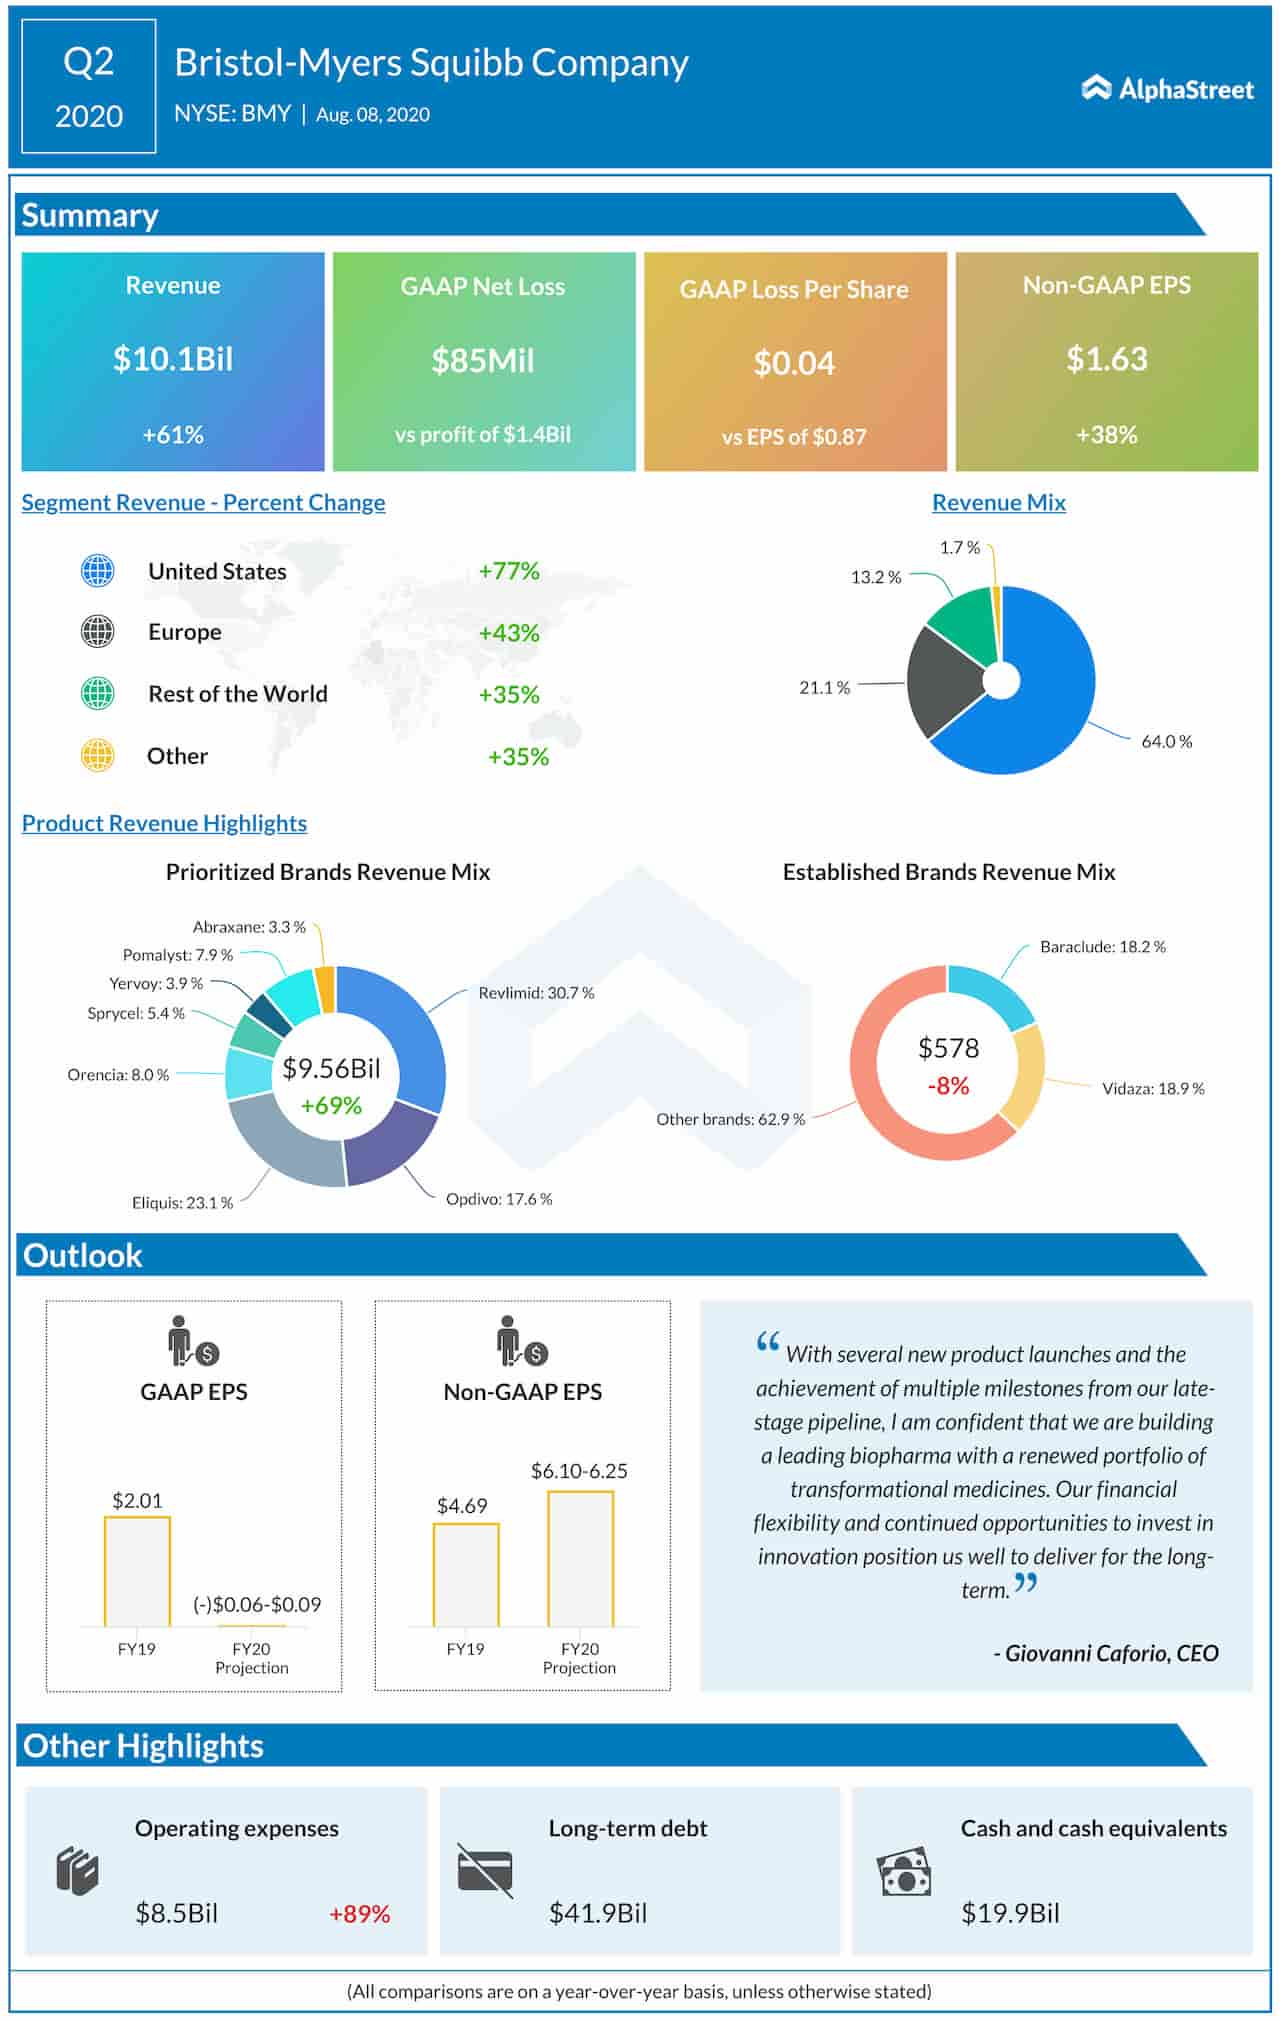 Bristol-Myers Squibb Company Q2 2020 earnings infographic